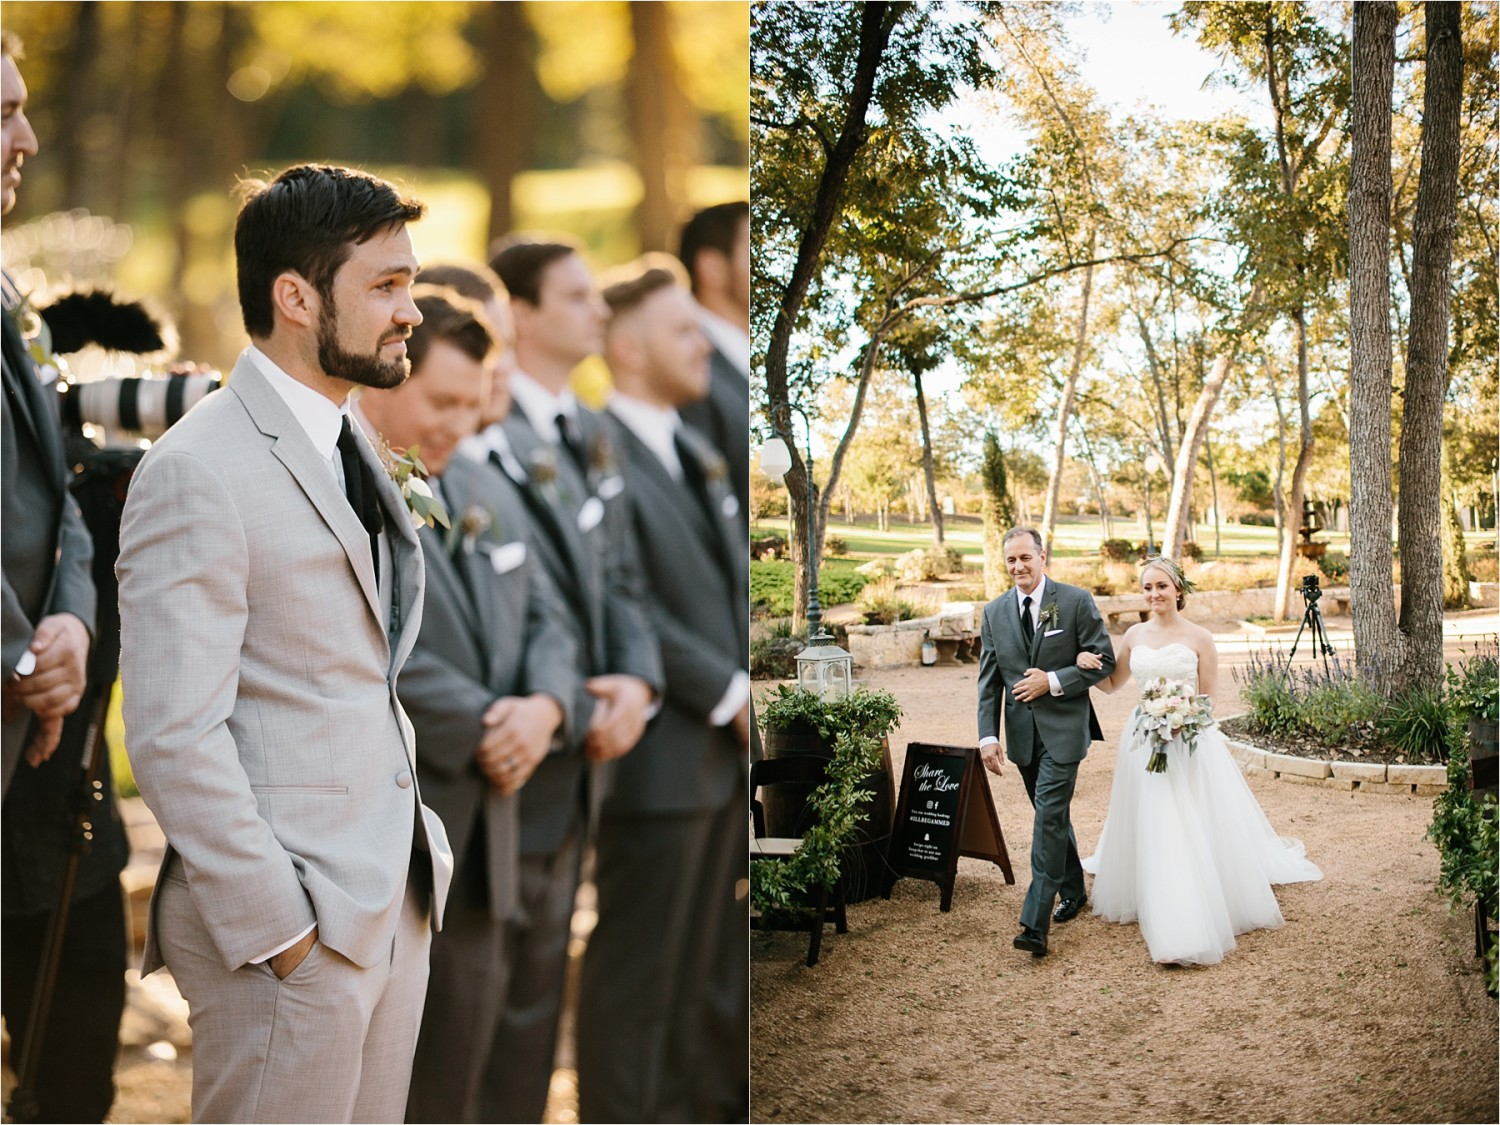 brad-lara-__-a-grey-and-blush-pink-intimate-wedding-at-hidden-waters-event-center-in-waxahachie-tx-by-north-texas-wedding-photographer-rachel-meagan-photography-_-042